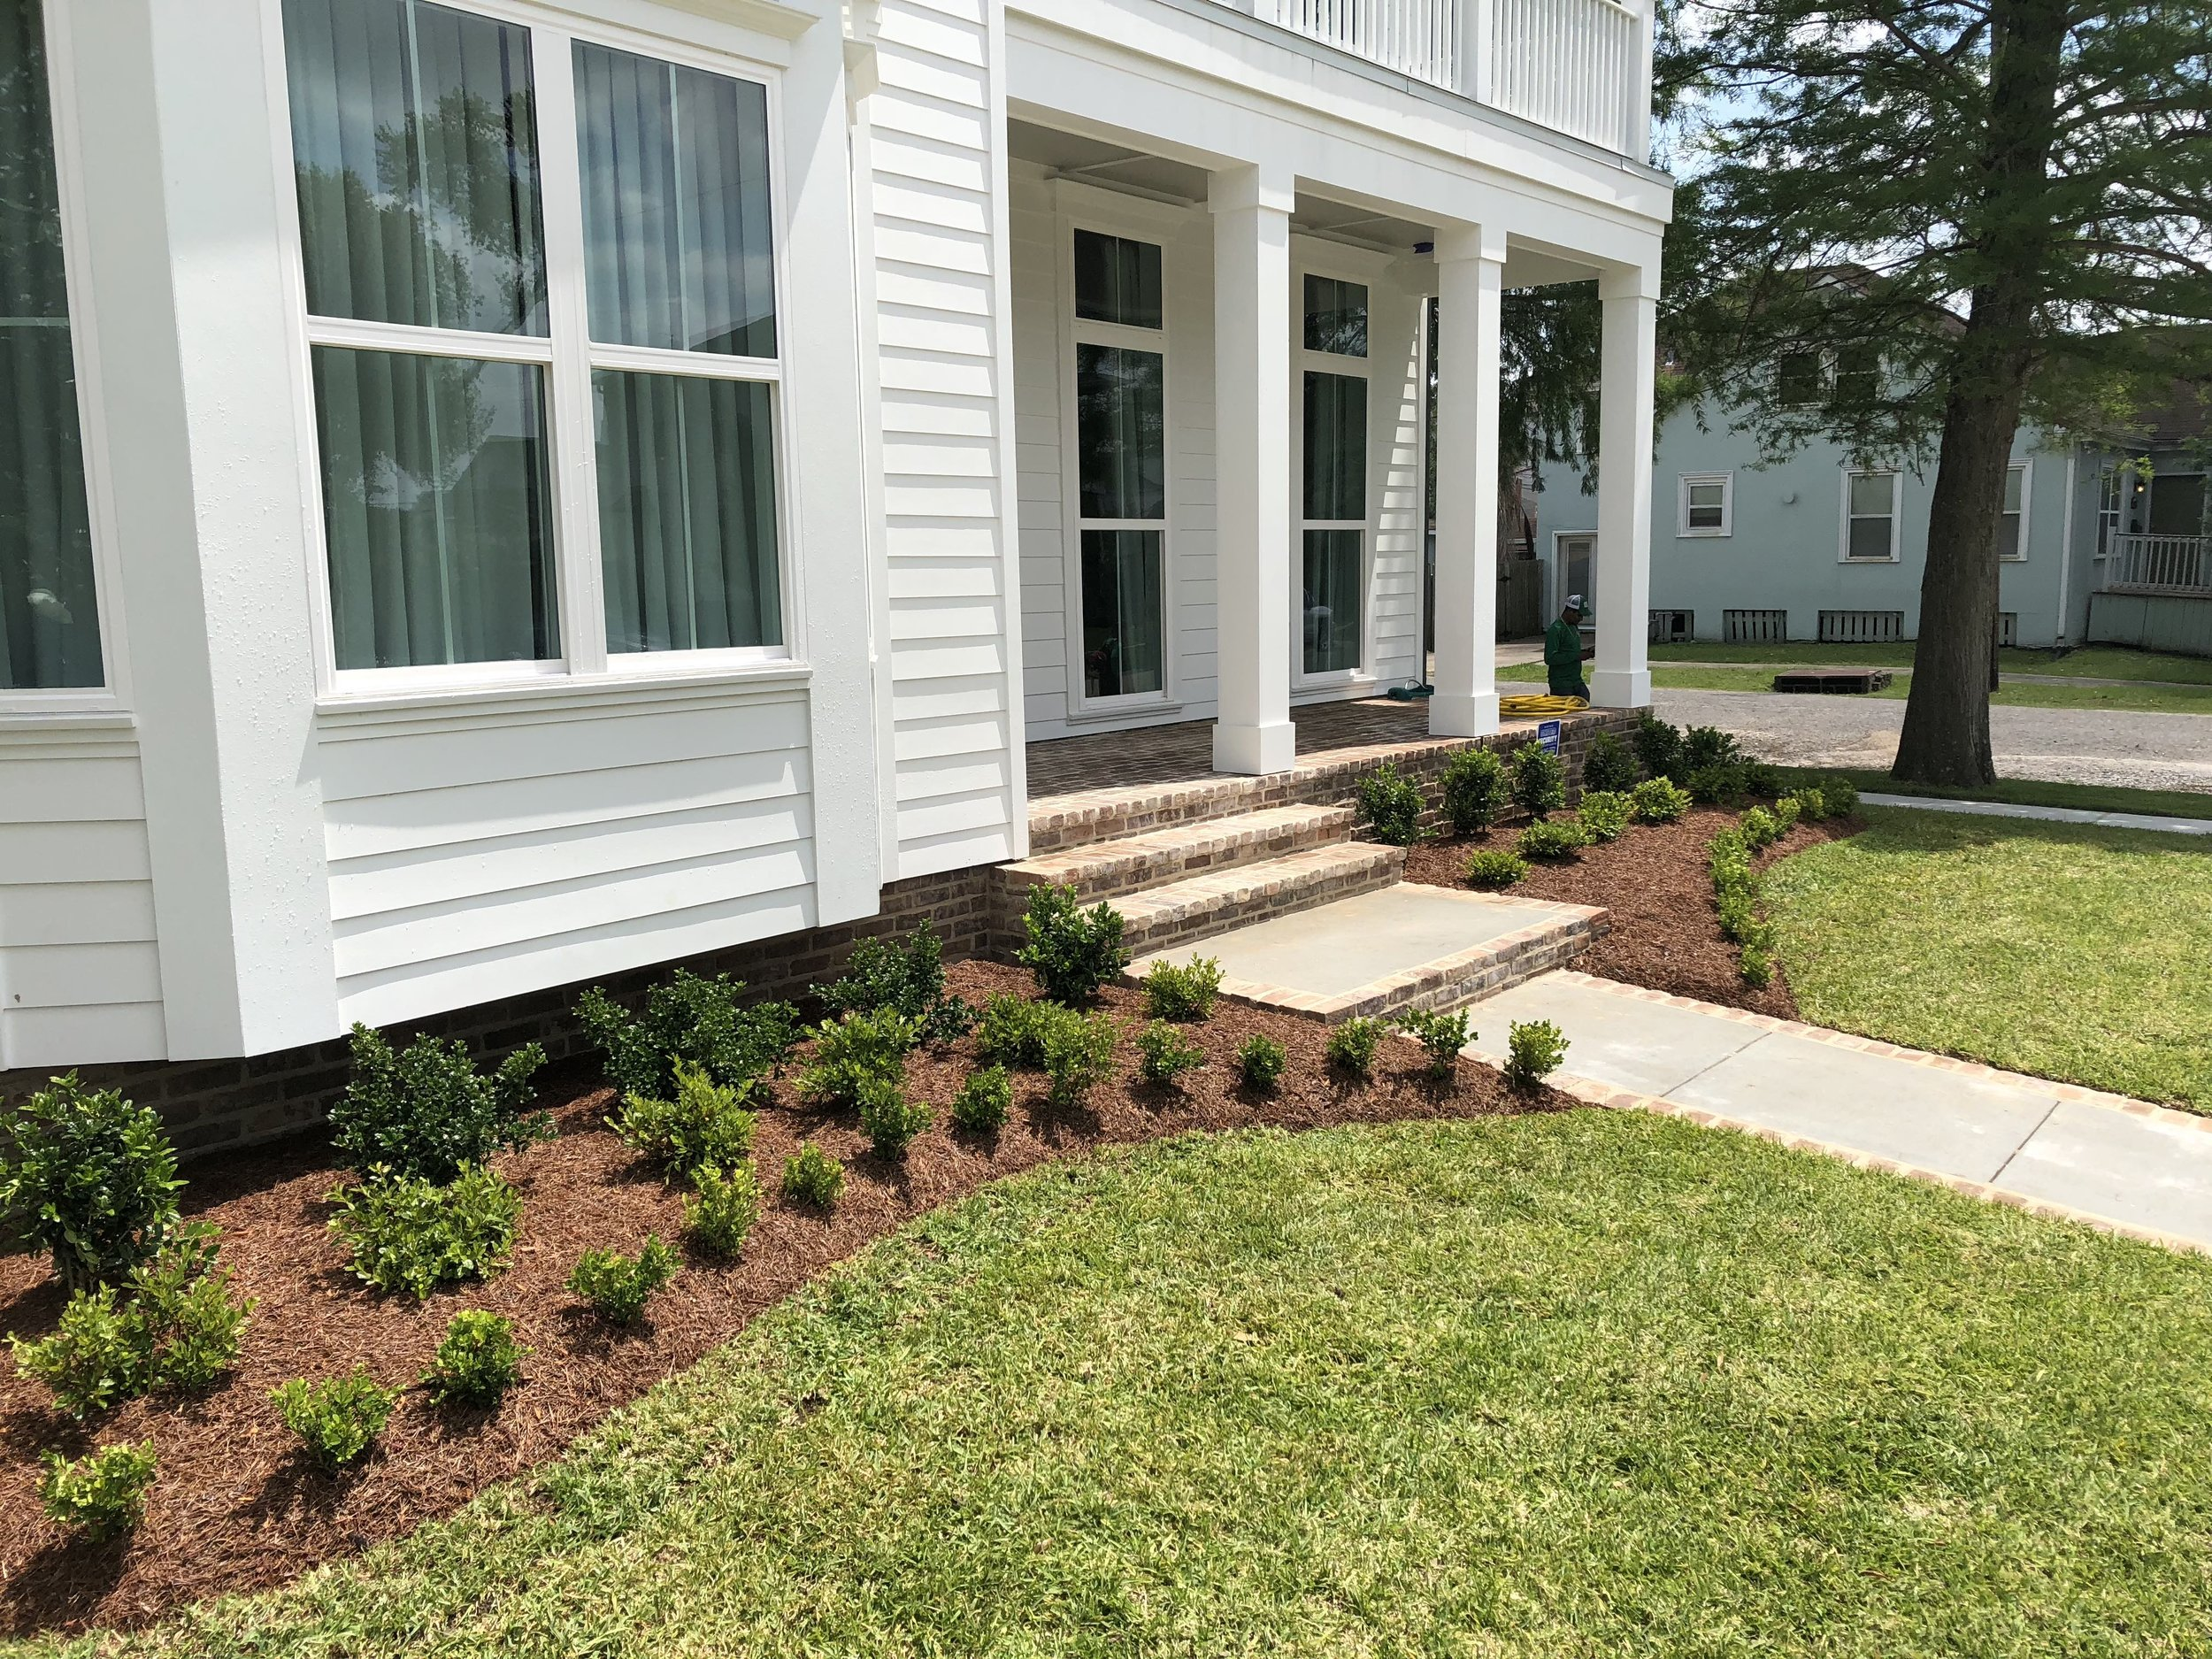 New garden bed with plants and pine straw